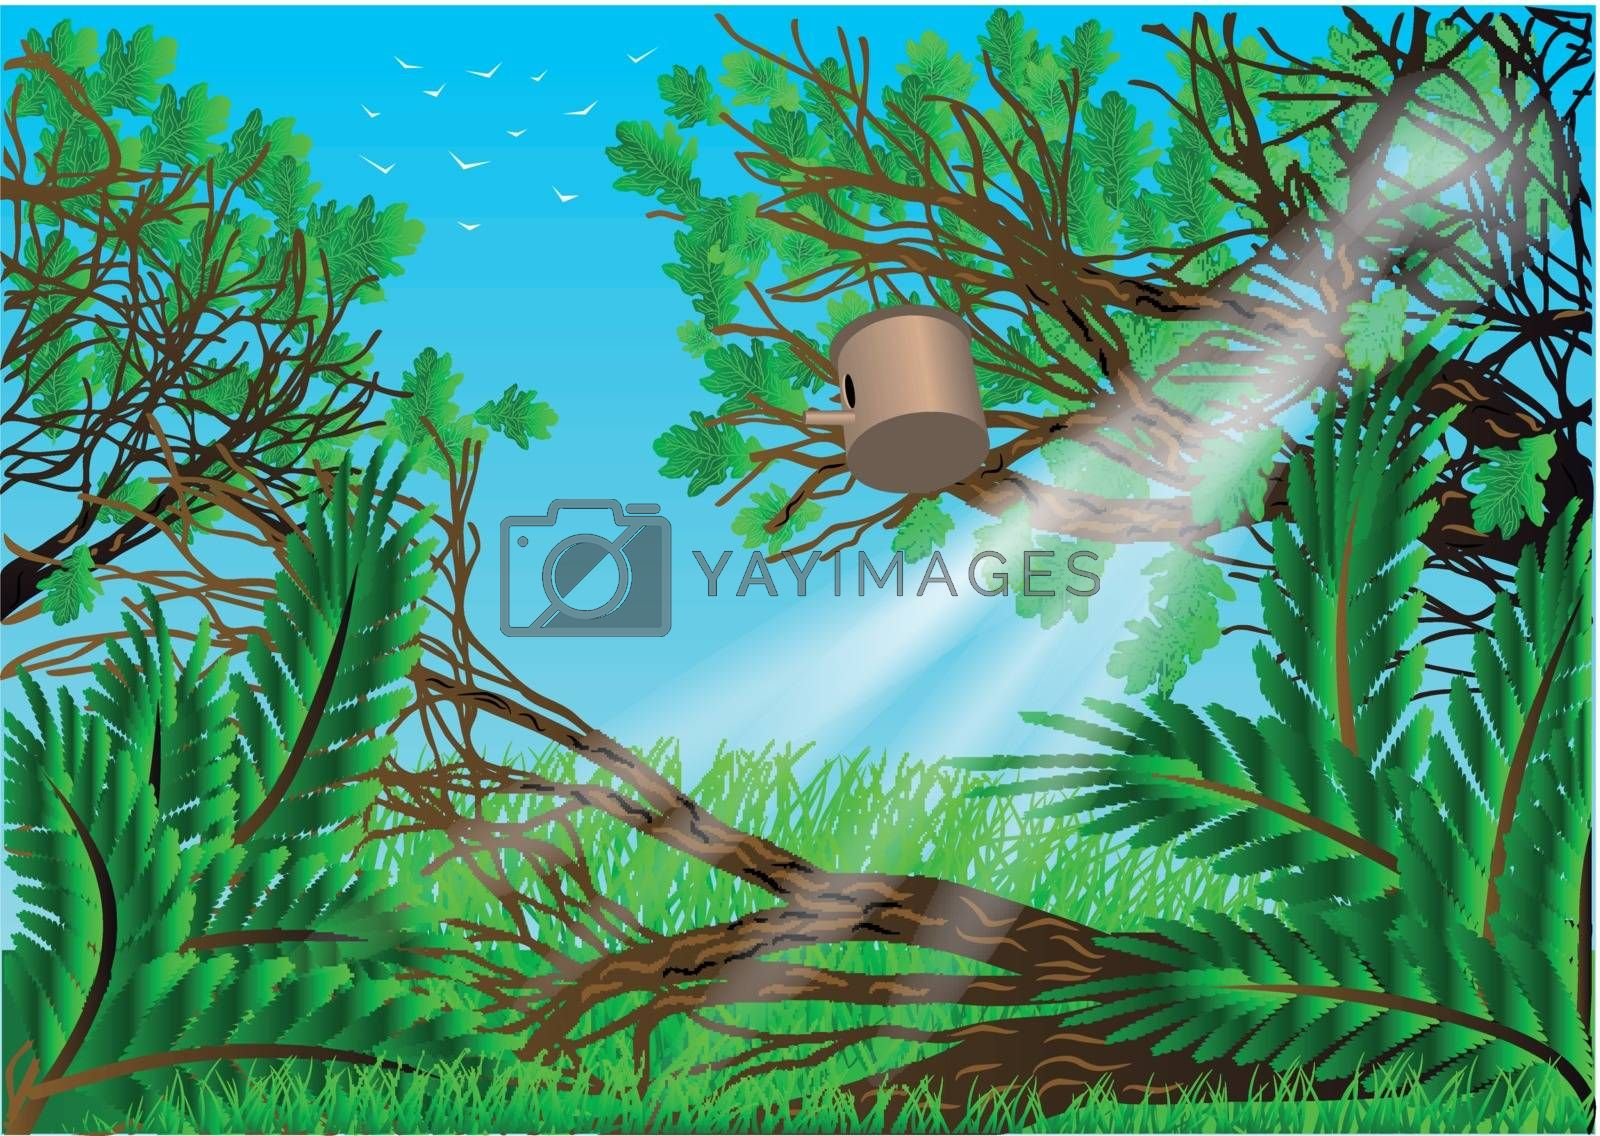 garden. summer background with trees and grass